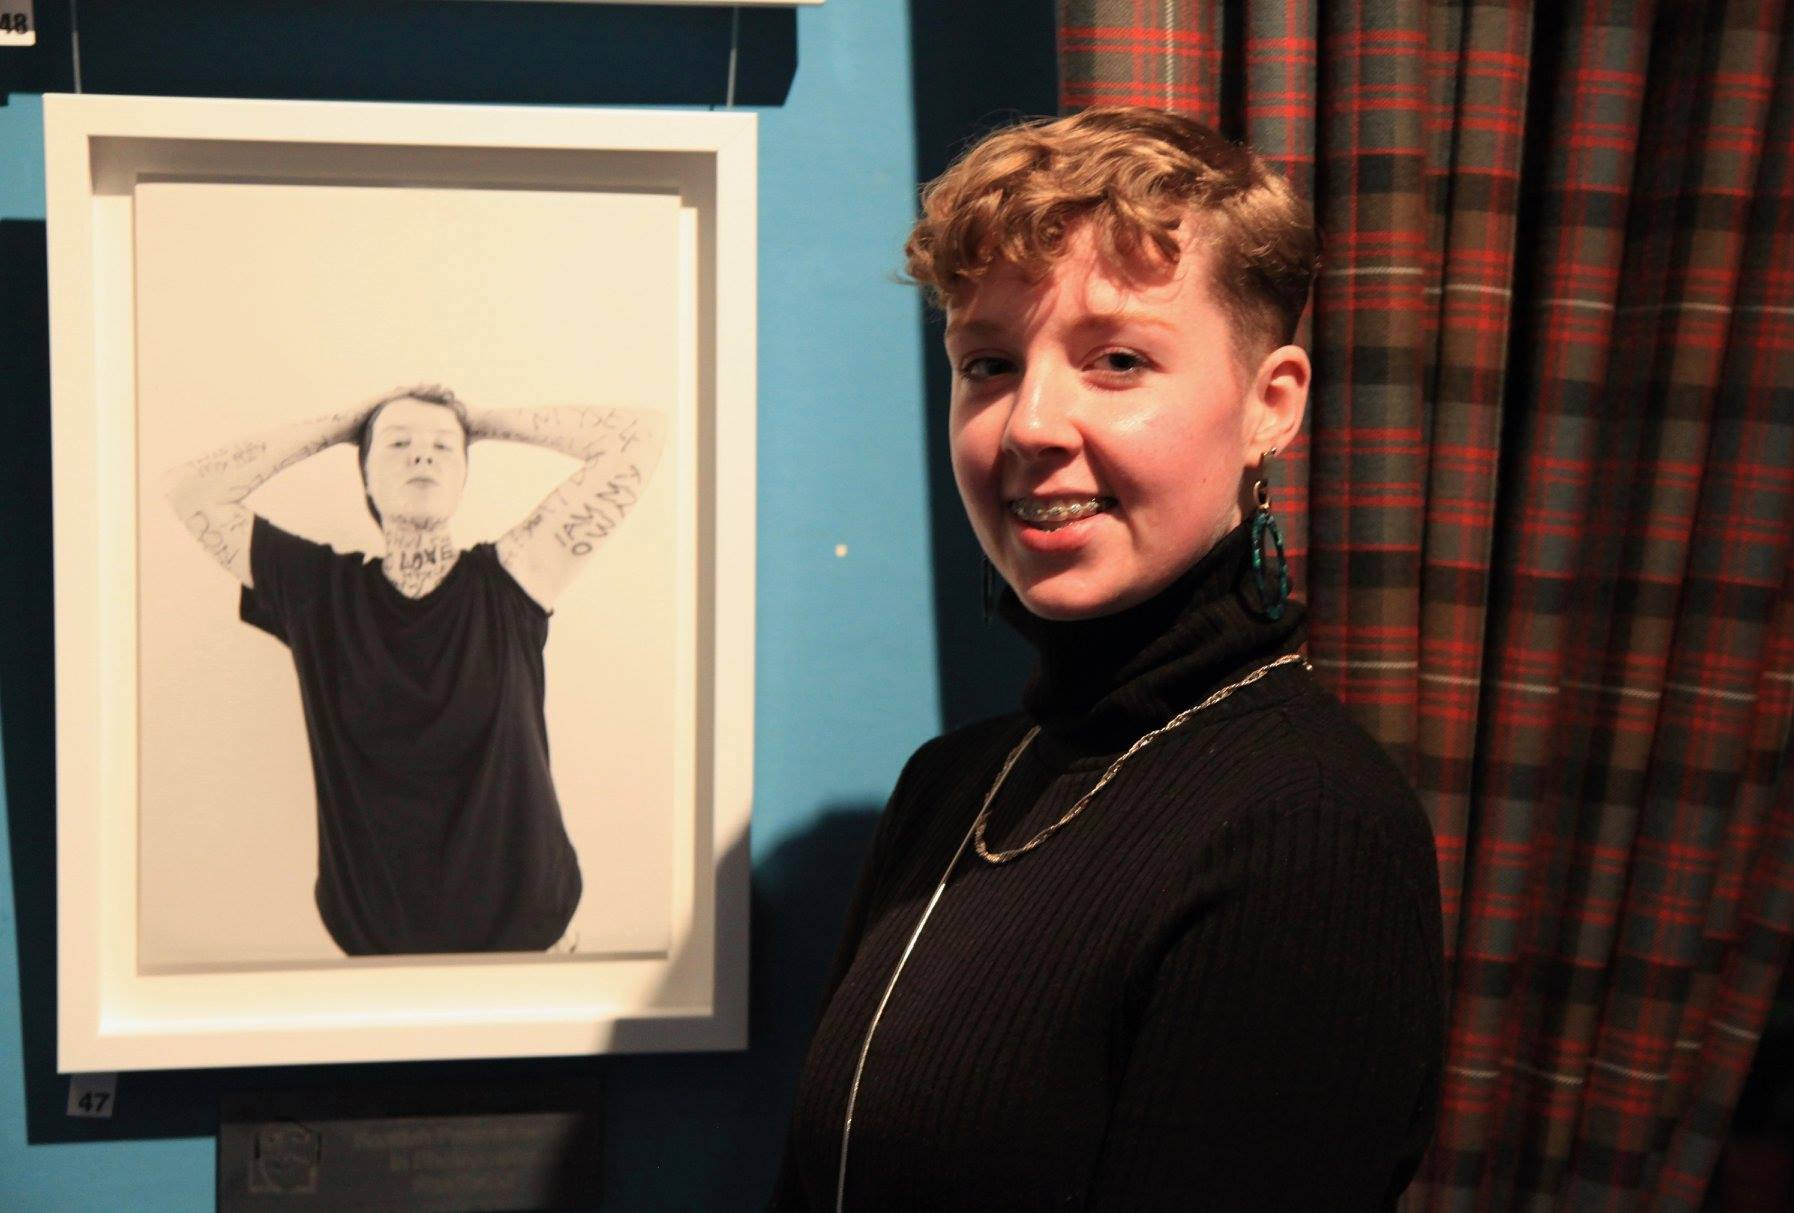 Winner of the SPA Young Photographer, Eliza Coulson, with her portrait Fragile.